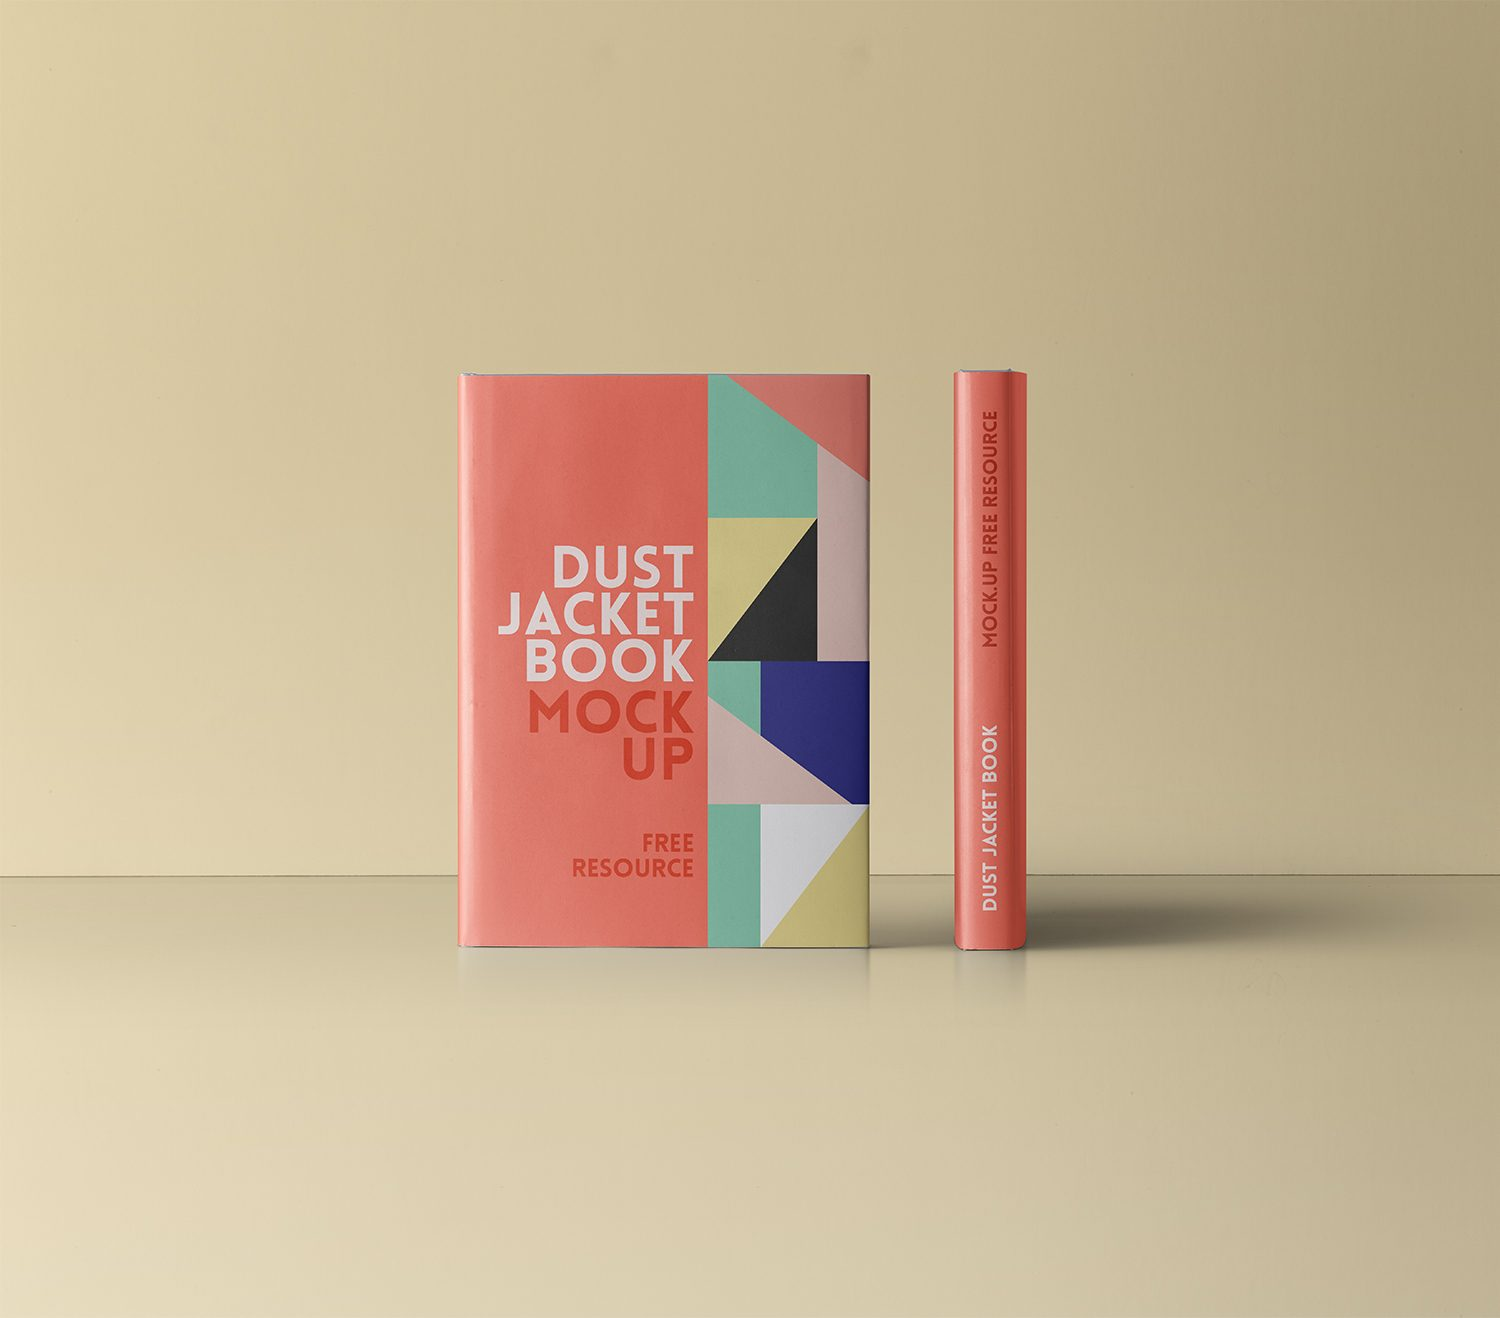 Dust Jacket Book Mockup PSD